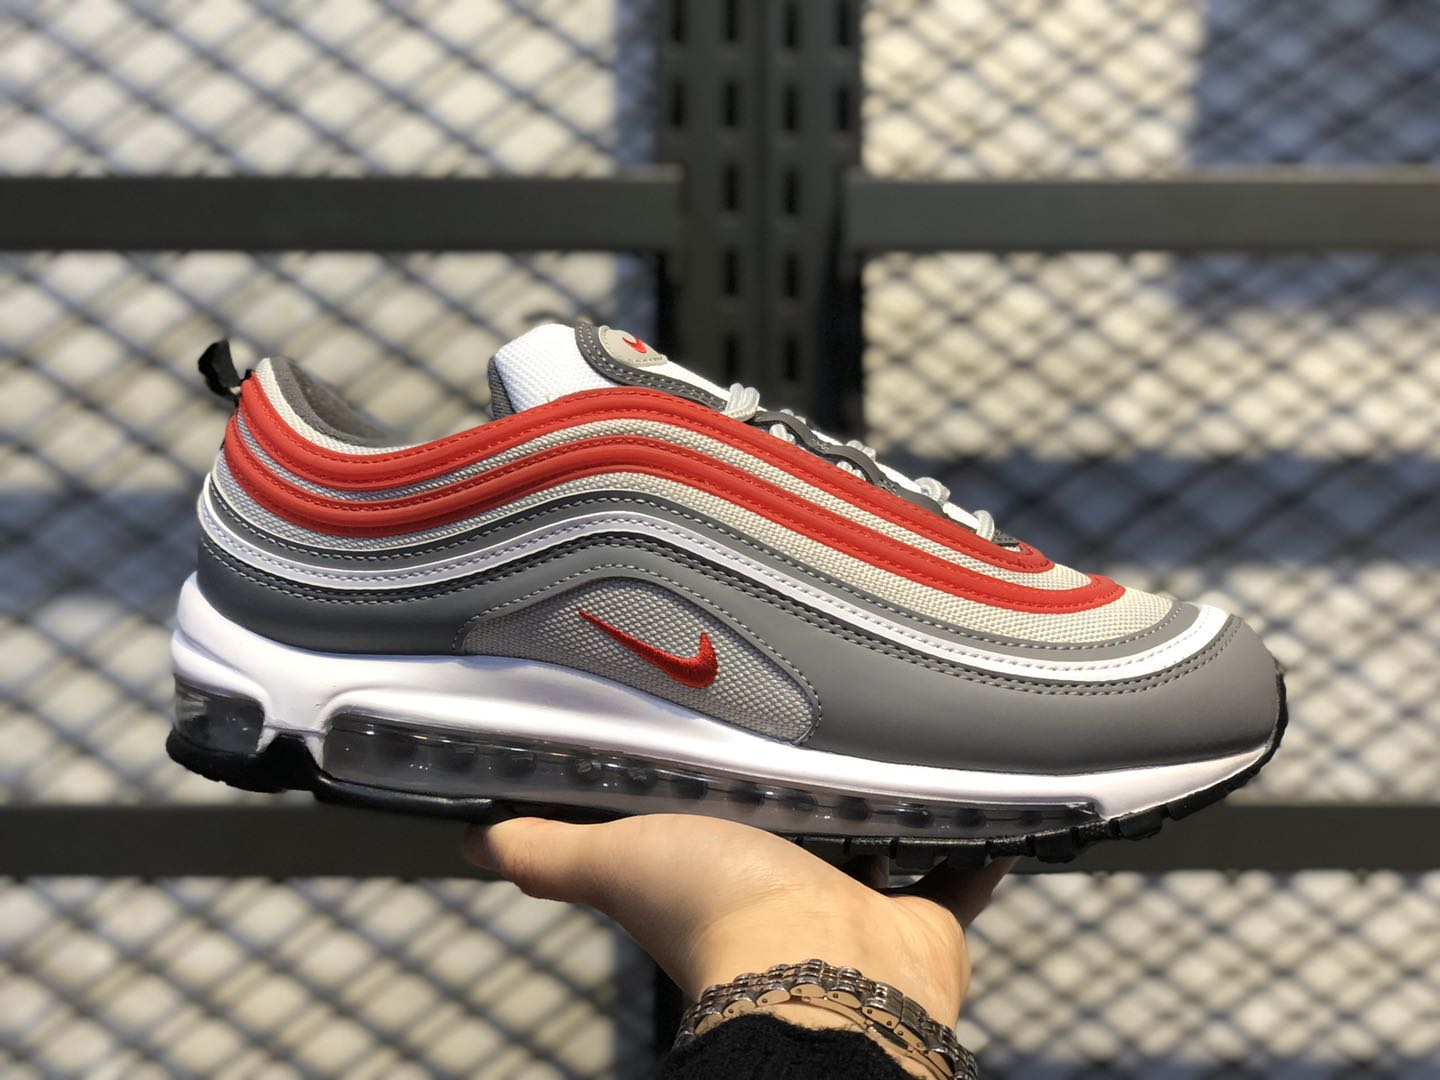 Nike Air Max 97 Smoke Grey/University Red-White Casual Shoes 921522-017